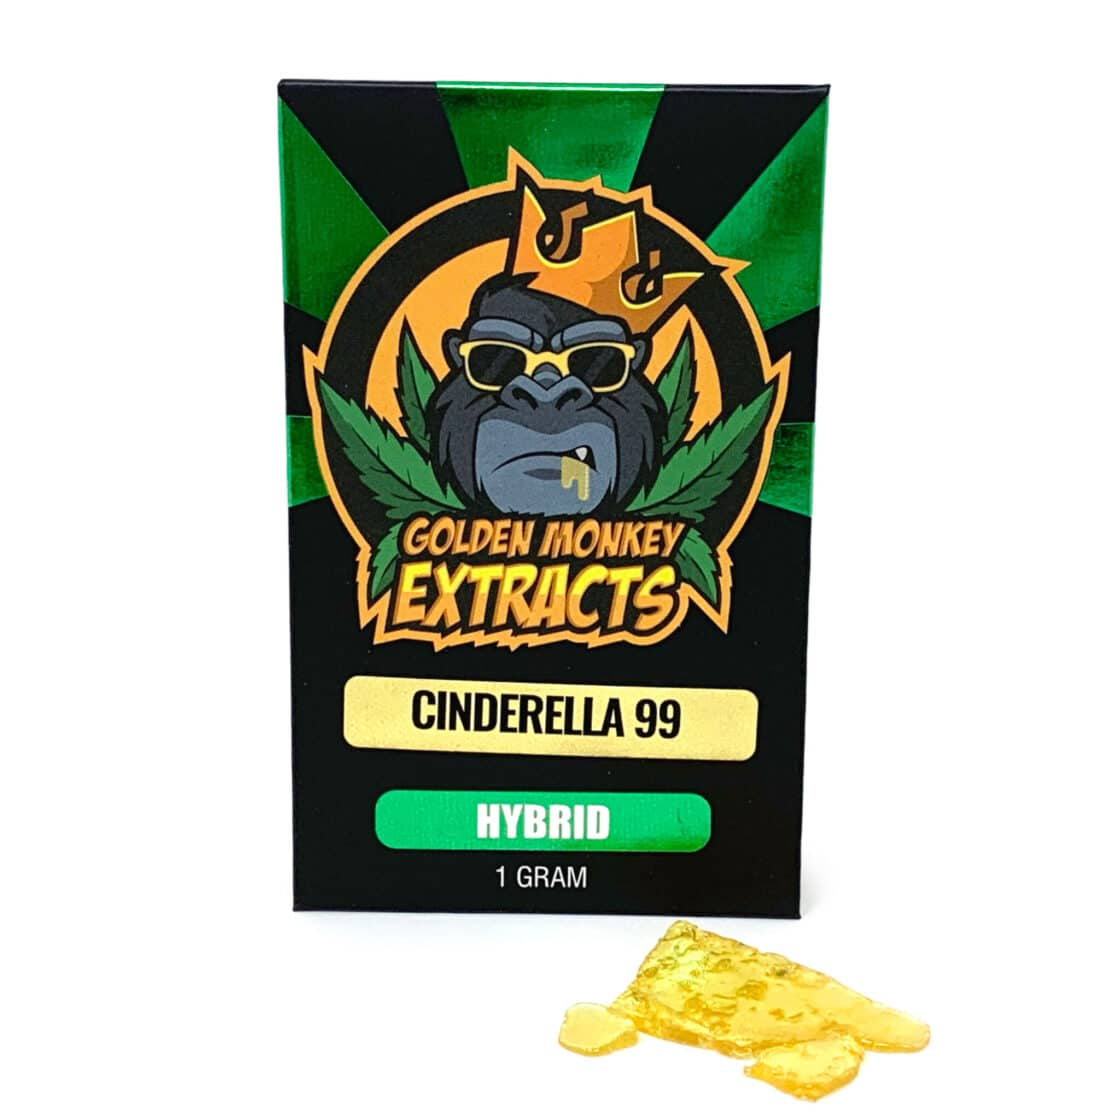 Golden Monkey Extracts Shatter Cinderella 99